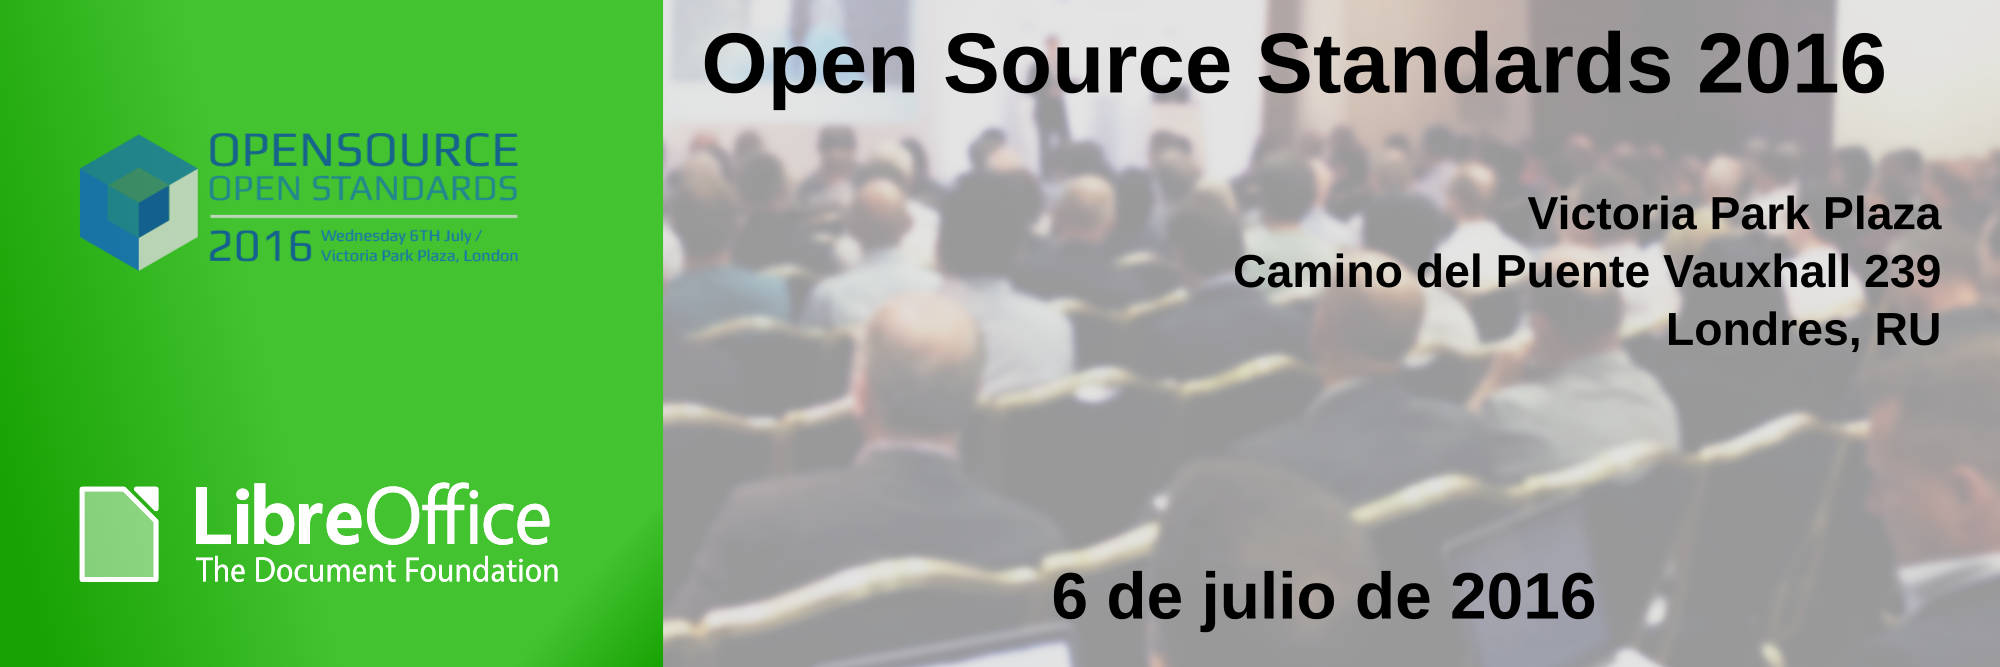 07 06Jul2016 OpenSourceStandards 2016 ES